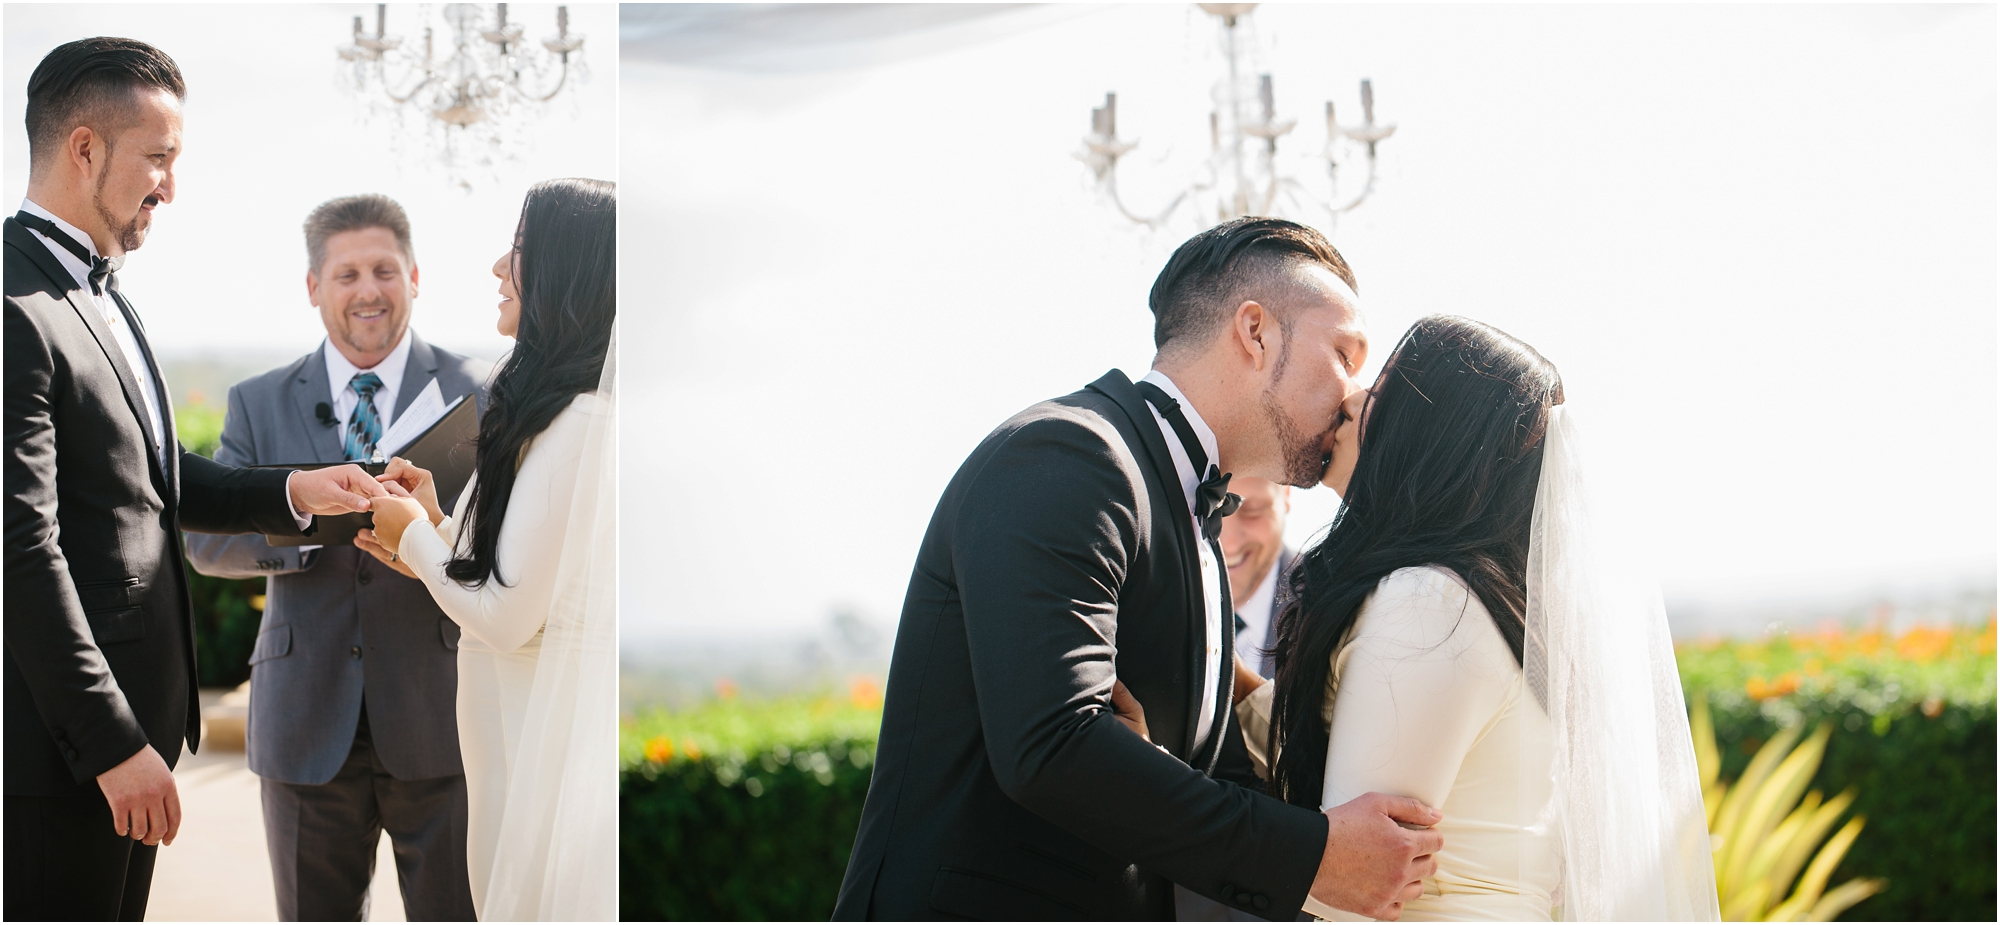 Grand Pacific Palisades Resort Wedding in Carlsbad - https://brittneyhannonphotography.com